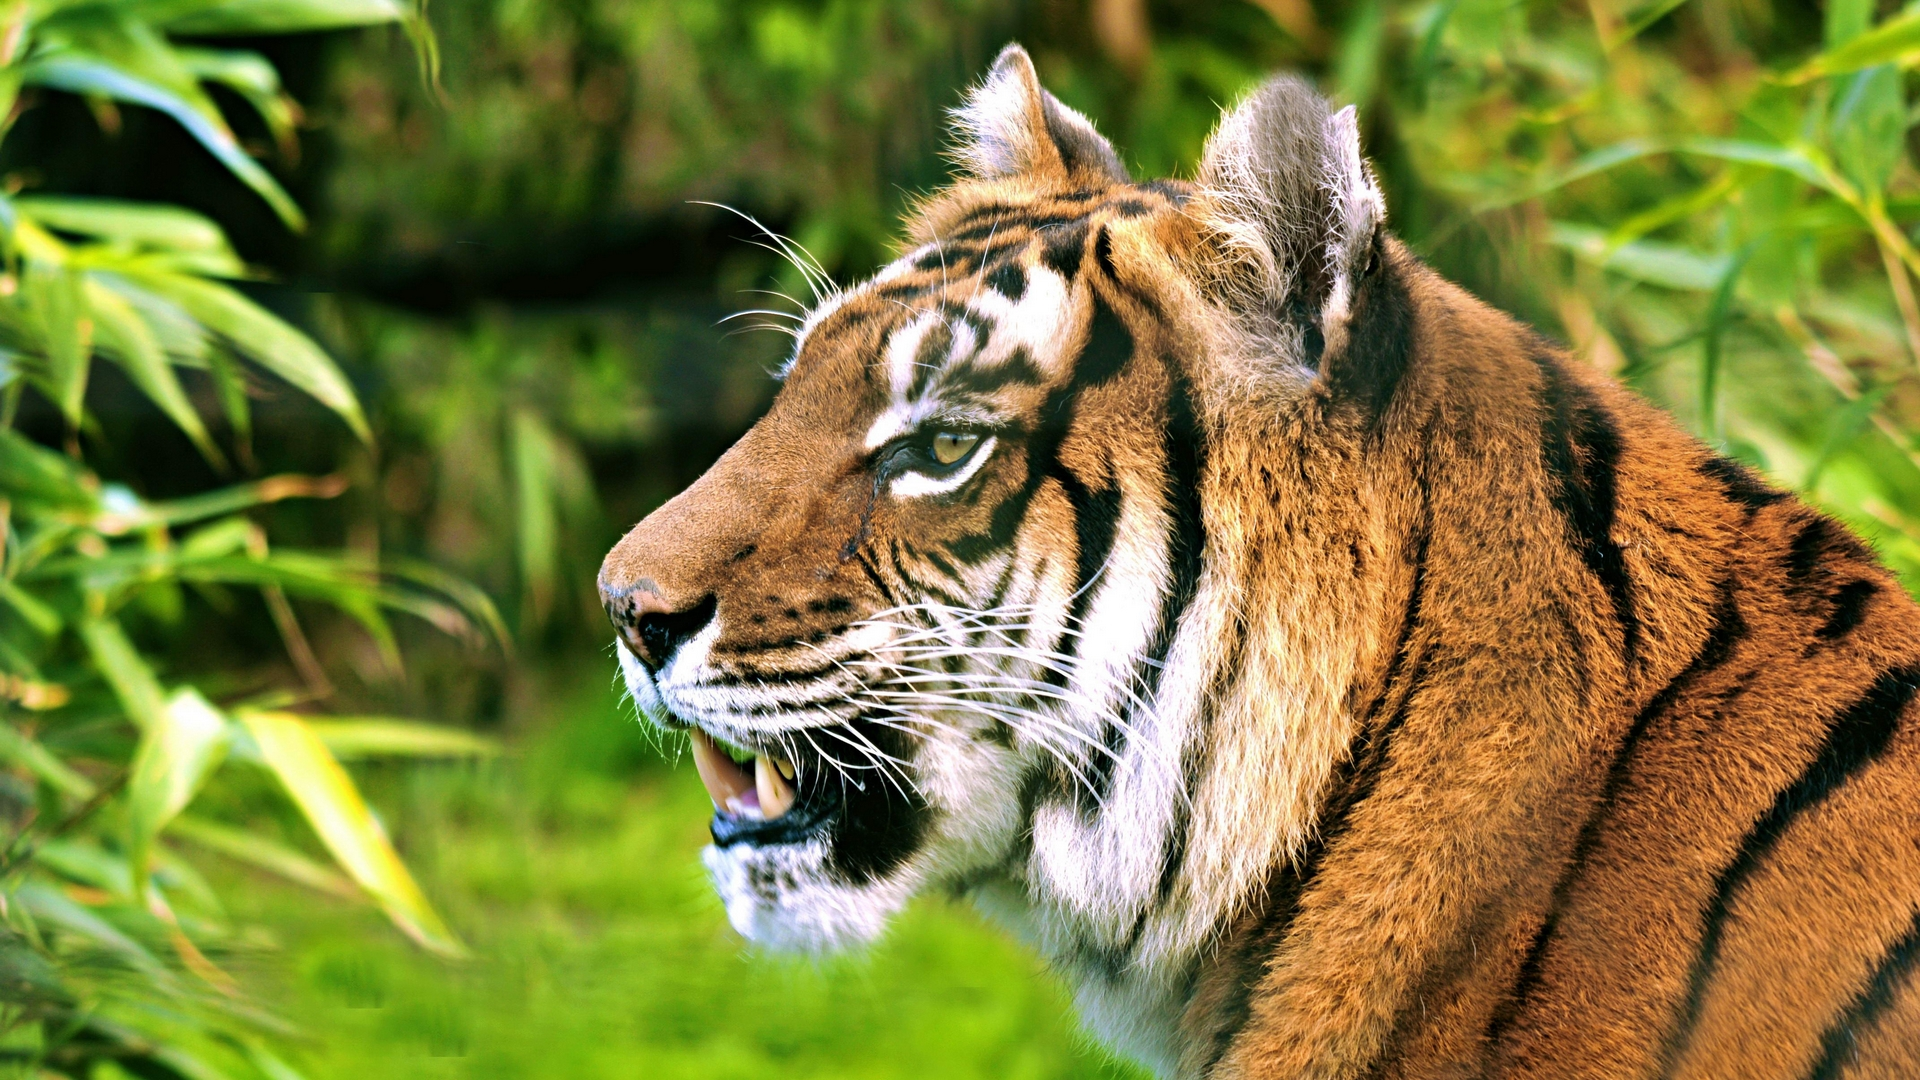 Angry Lion Wallpaper Hd 1080p Tiger Wallpapers High Quality Download Free